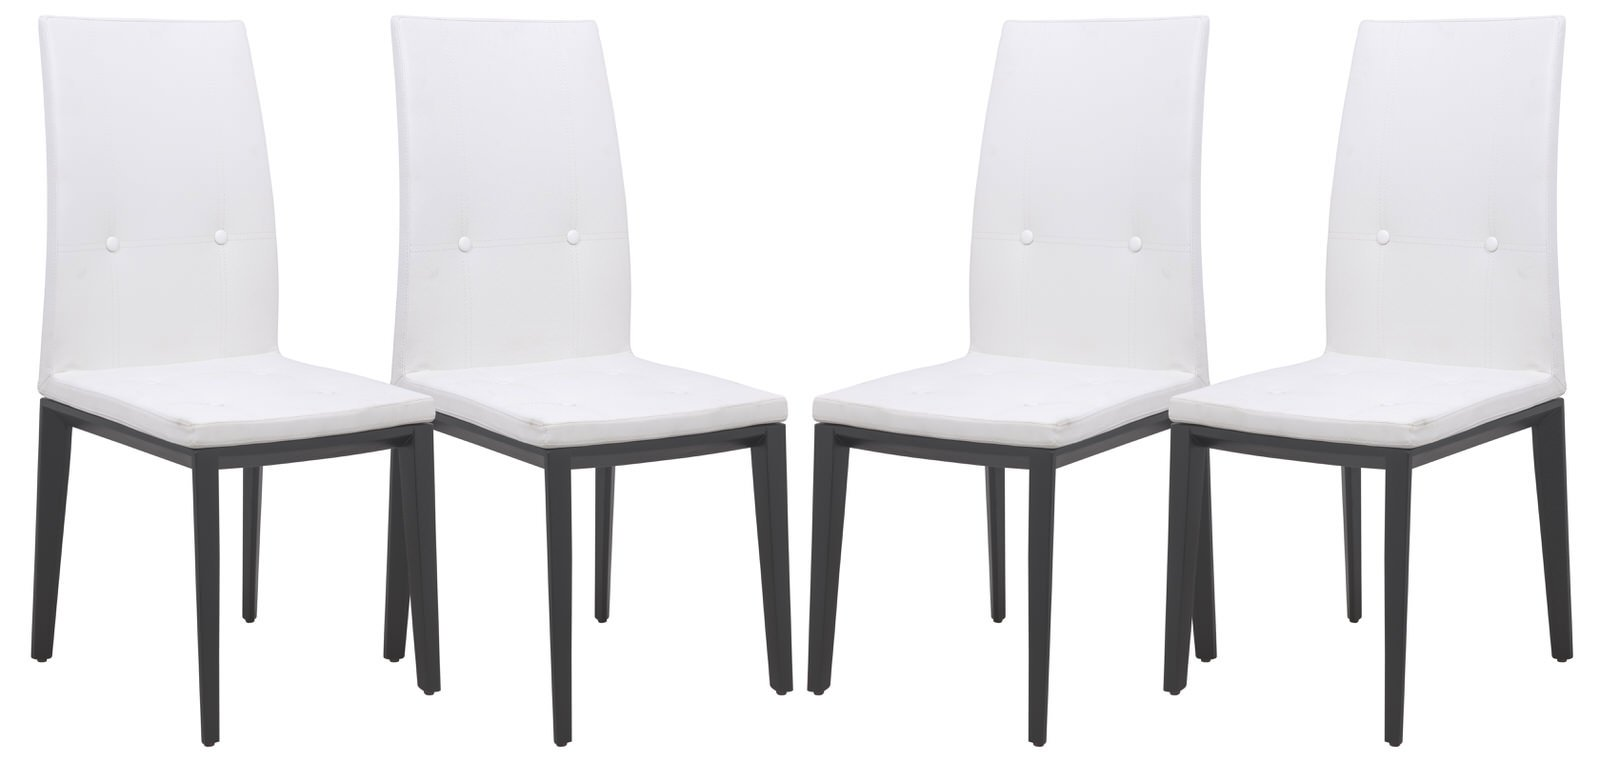 Swell Somers Contemporary Faux Leather White Dining Chair Set Of 4 By Leisuremod Ibusinesslaw Wood Chair Design Ideas Ibusinesslaworg